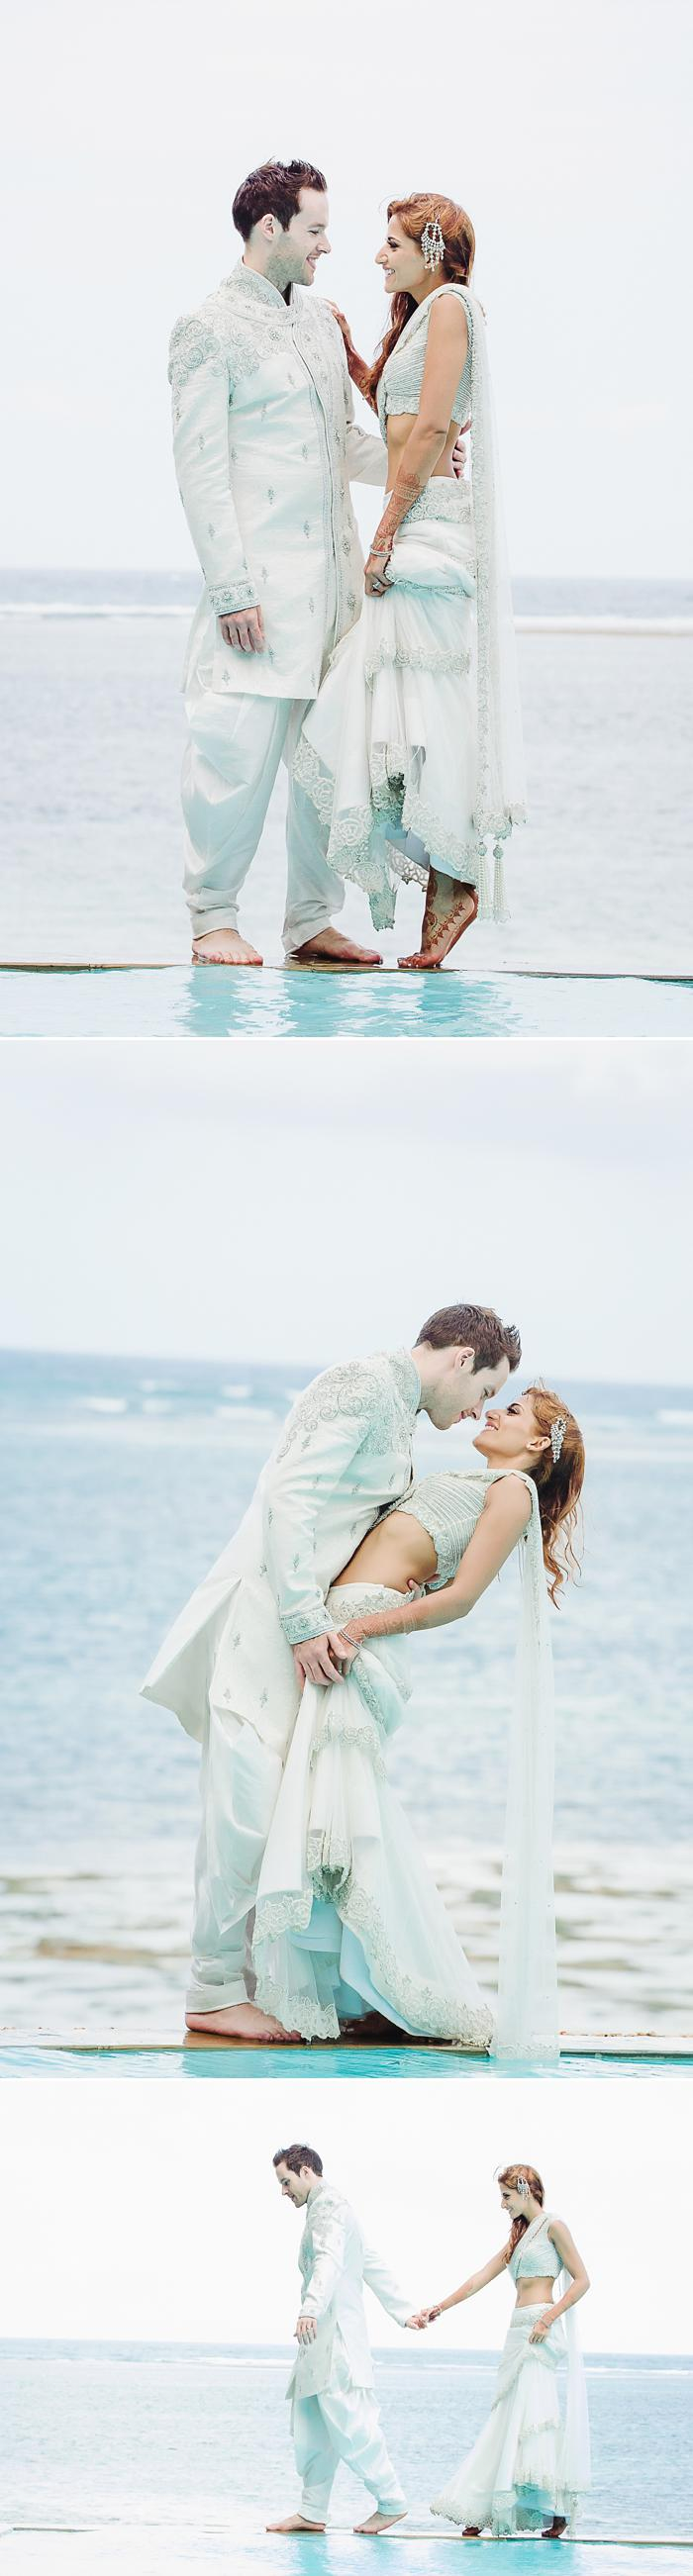 Baobab Beach Wedding Photographer in Diani